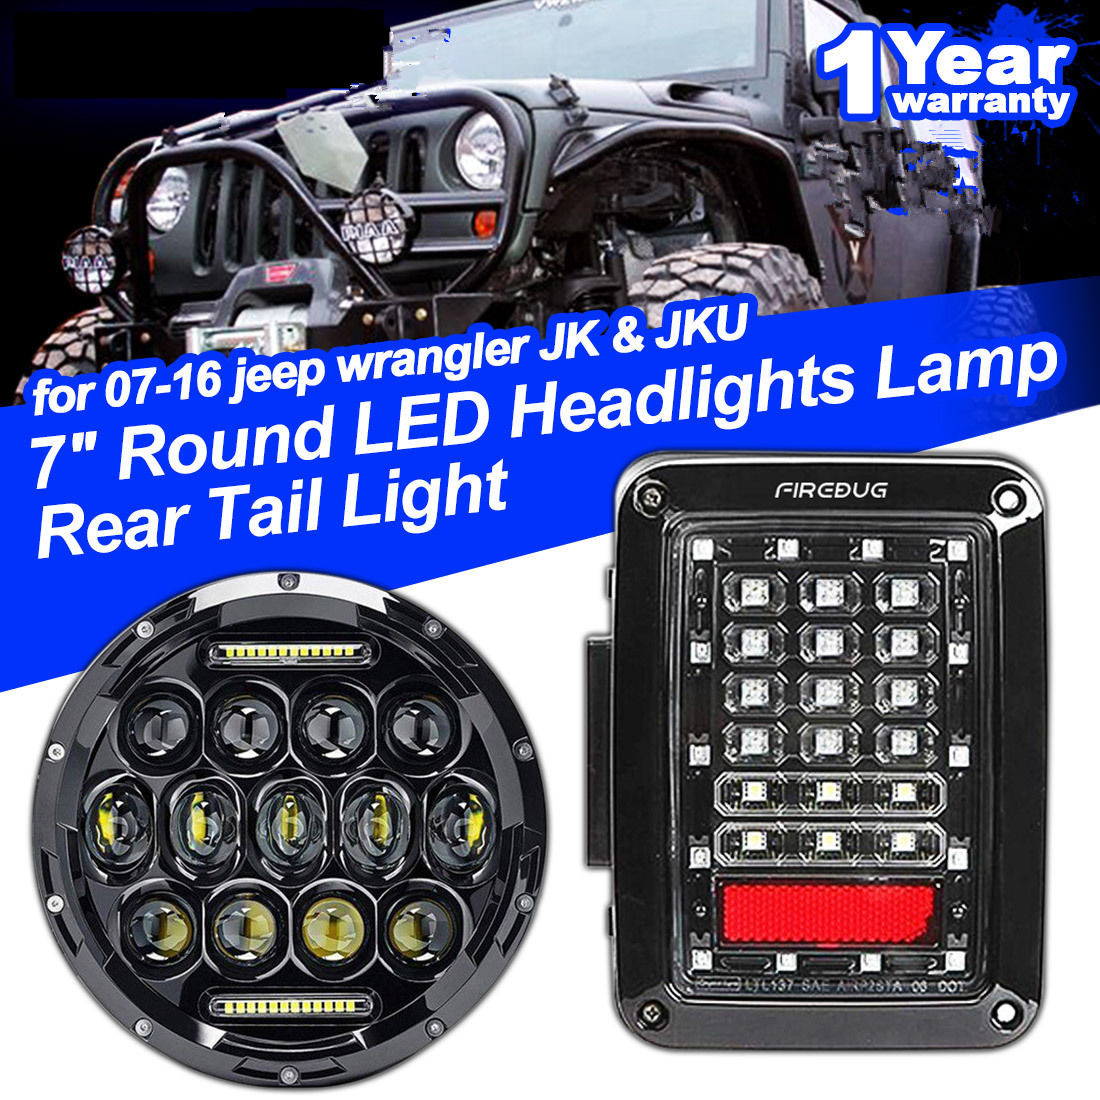 hight resolution of  led rugged tail light for jeep wrangler jk 20072016 t on 1997 jeep wrangler engine diagram 97 wrangler wiring